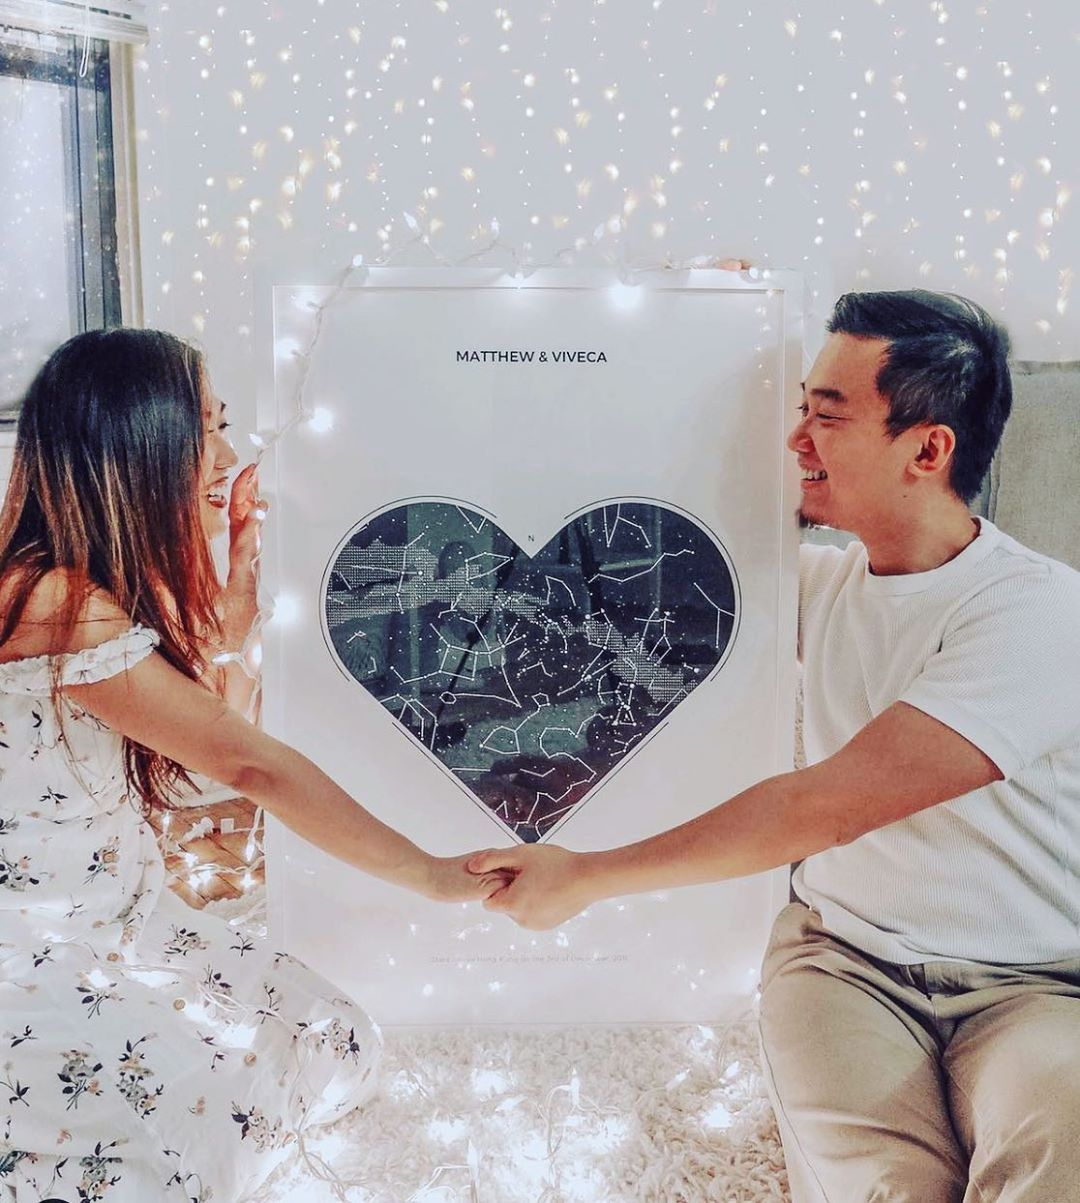 Under Lucky Stars in 2020 Star map, Cute relationships